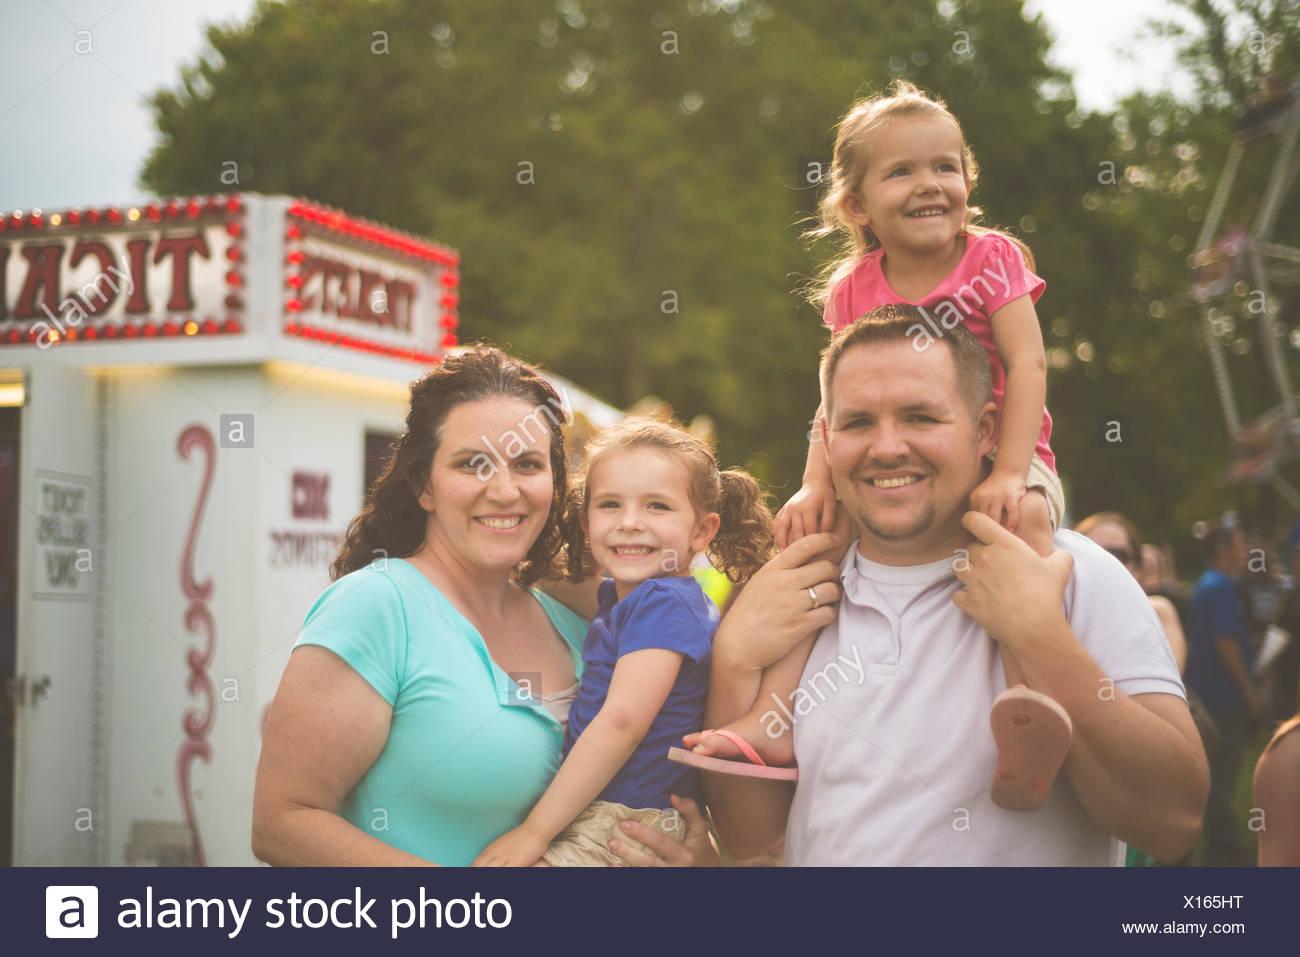 Family portrait of mid adult couple and two young daughters at funfair - Stock Image